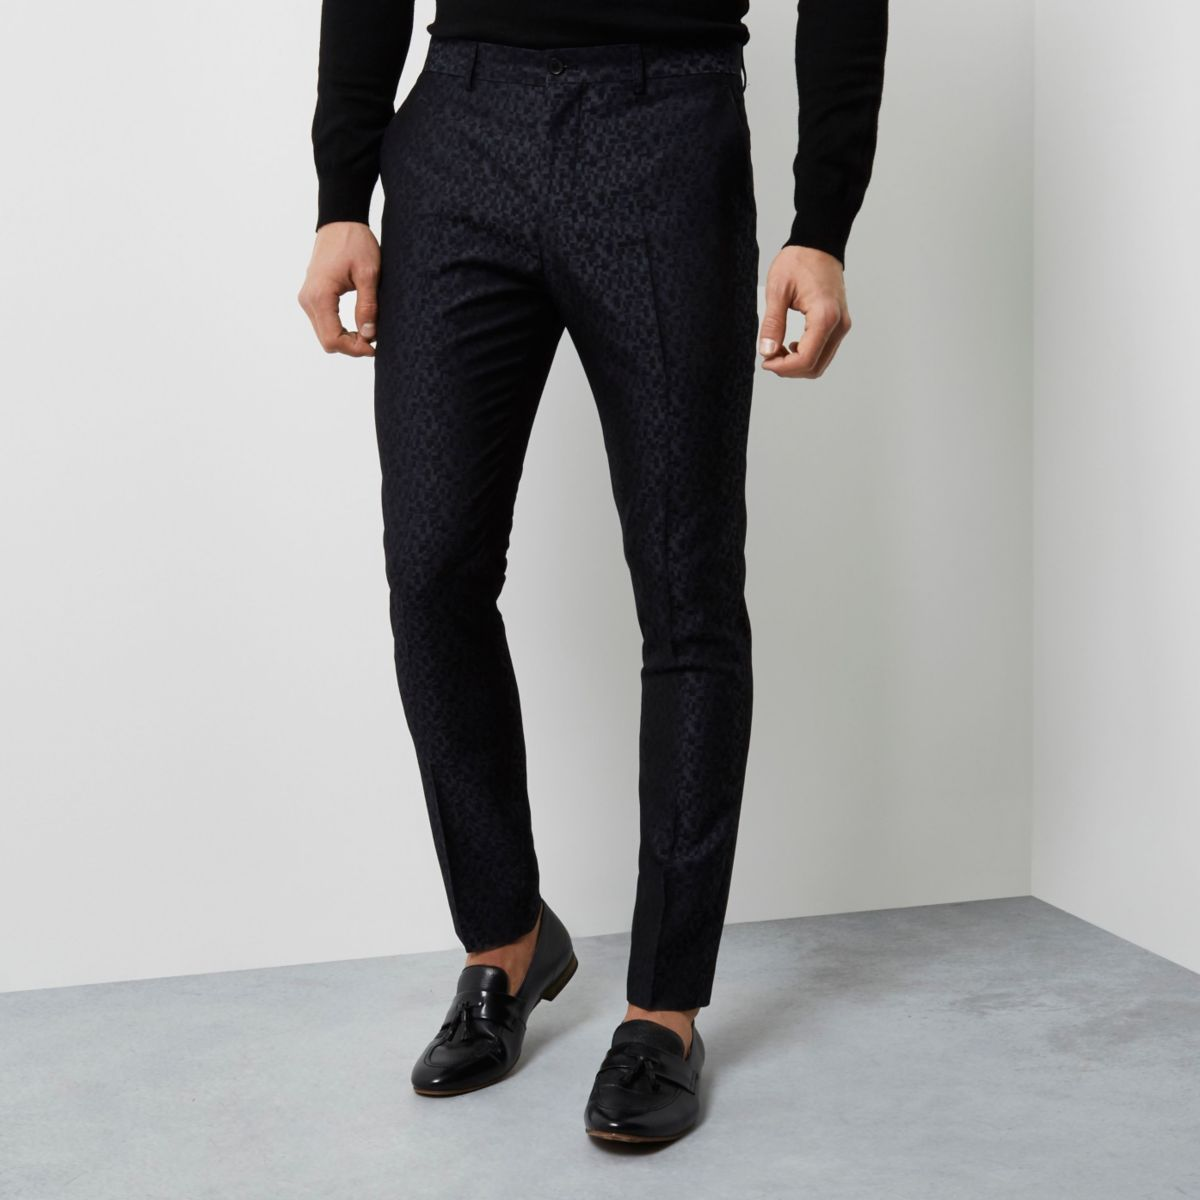 Black geo jacquard skinny smart trousers